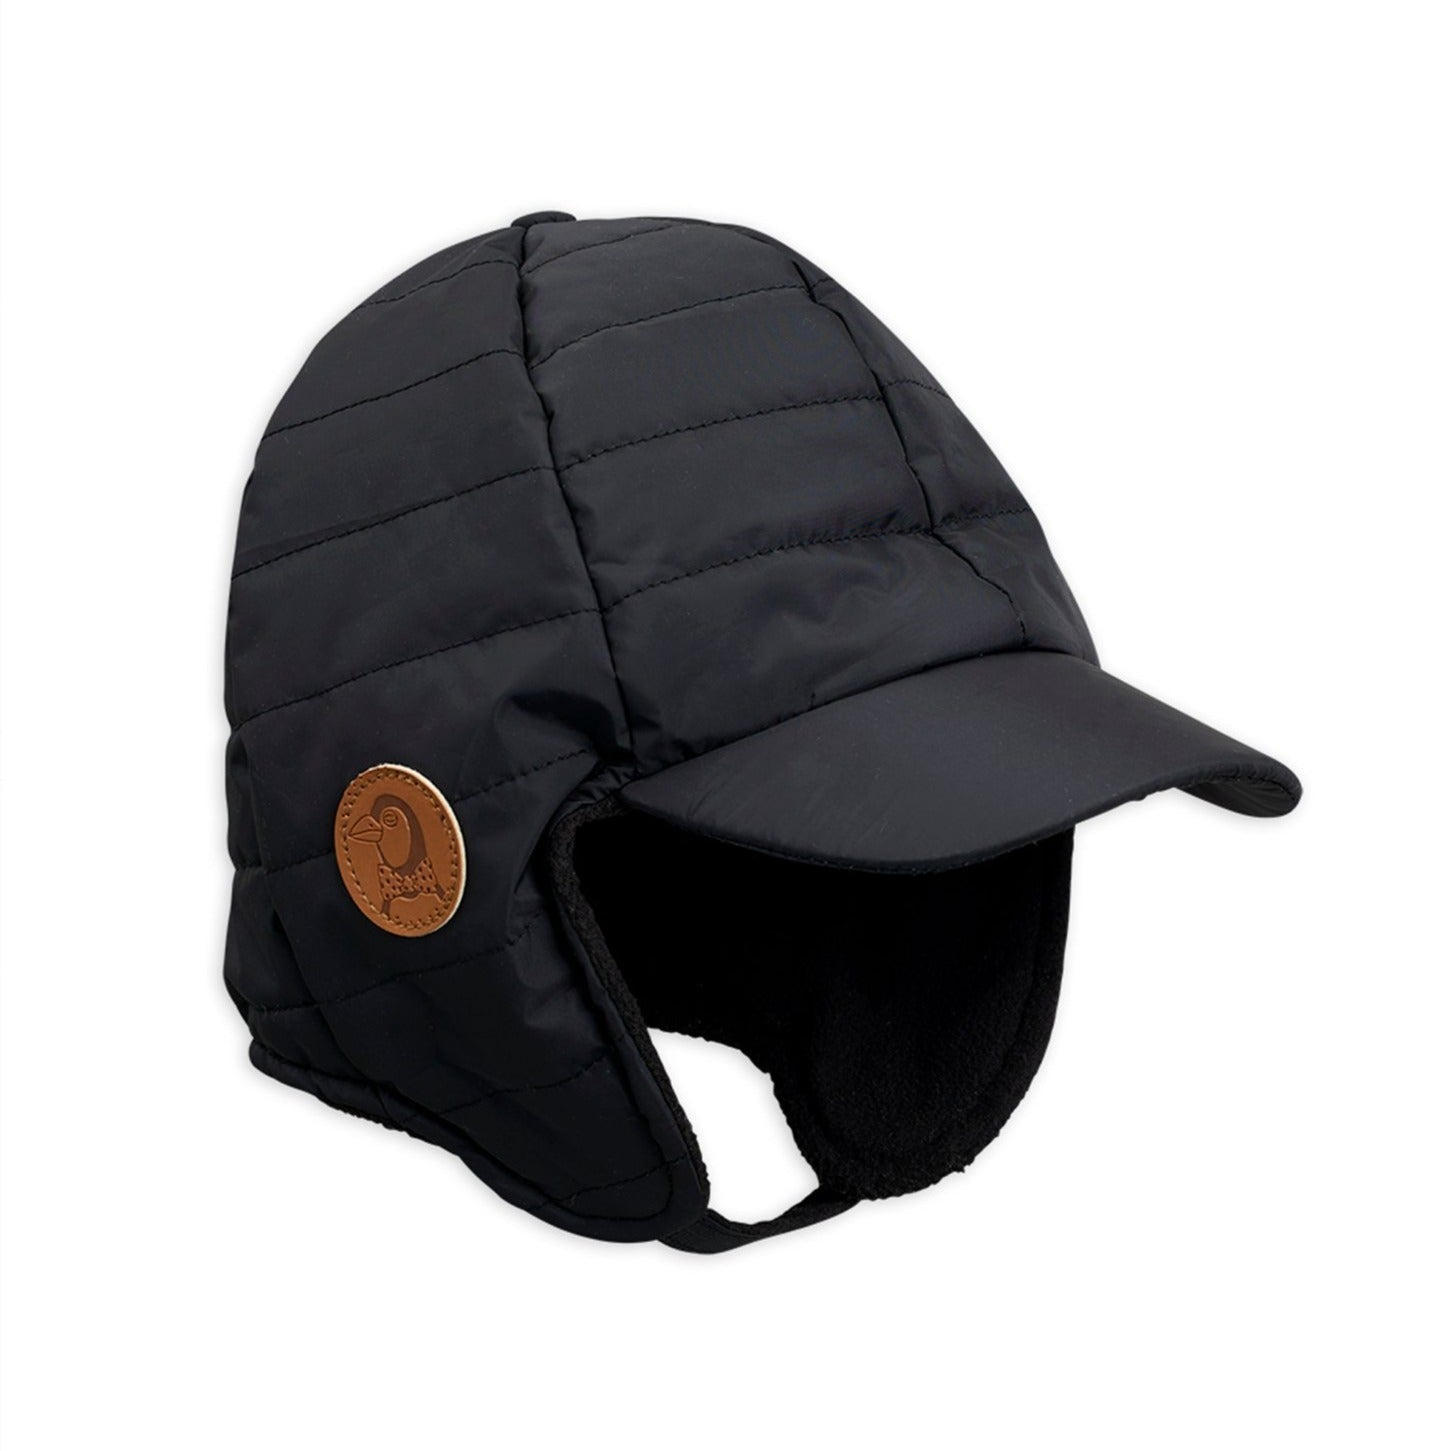 Mini Rodini insulator talvihattu, black